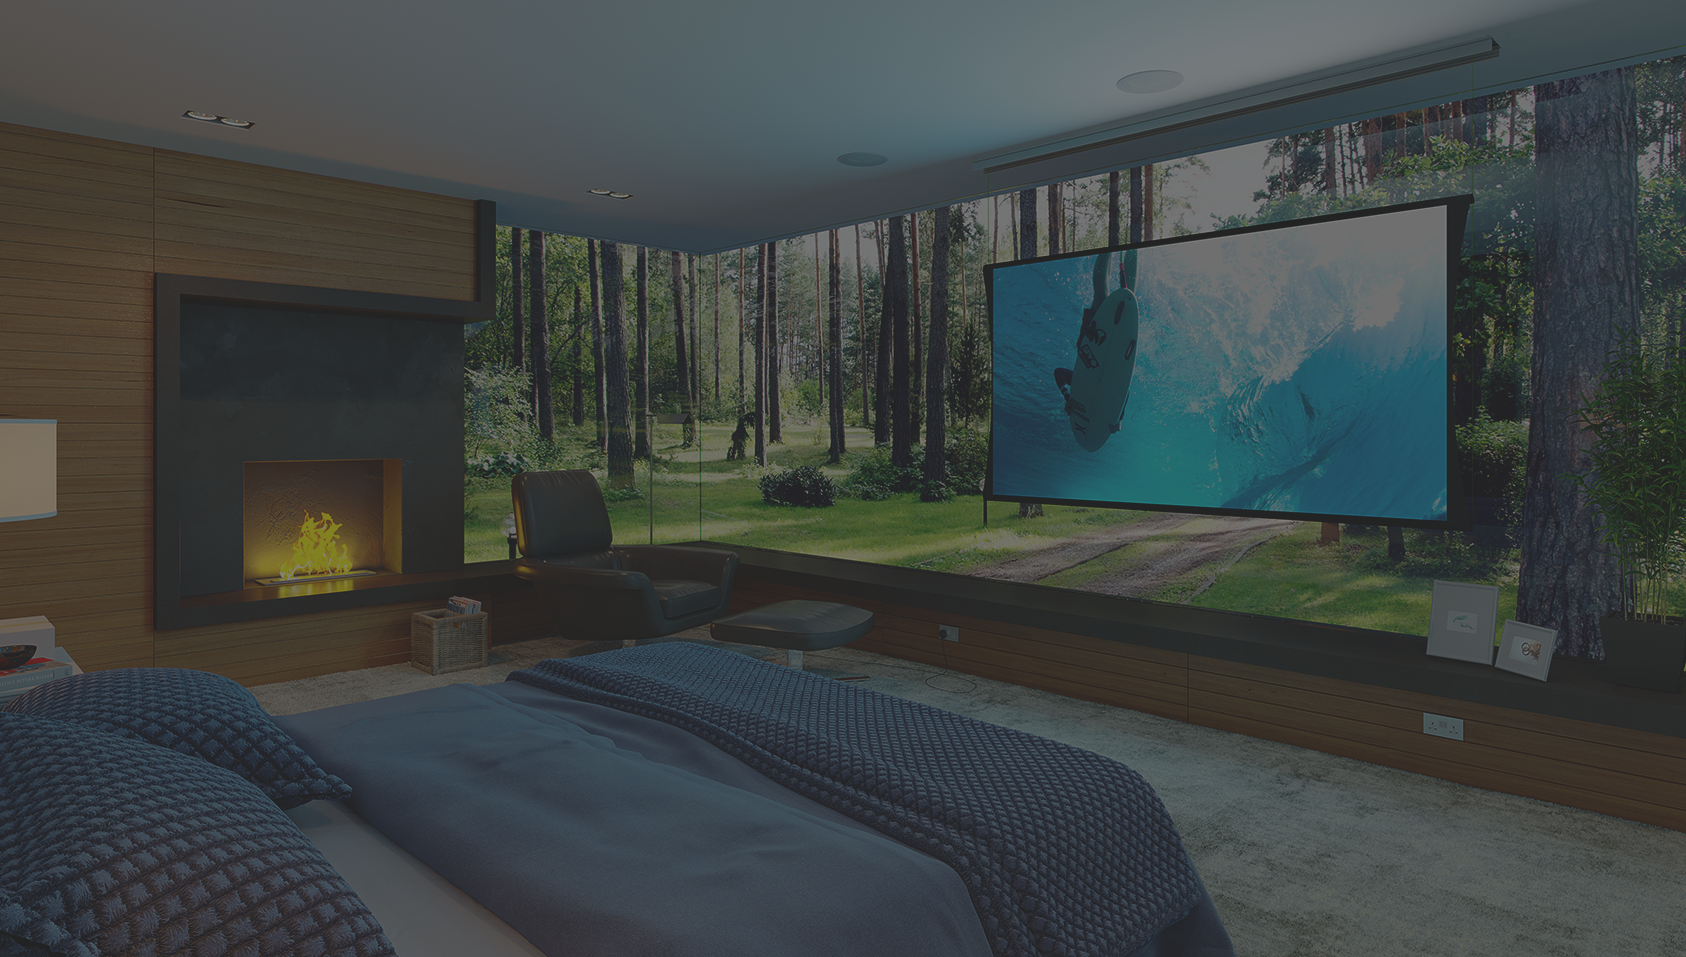 Bedroom with fireplace, and floating TV